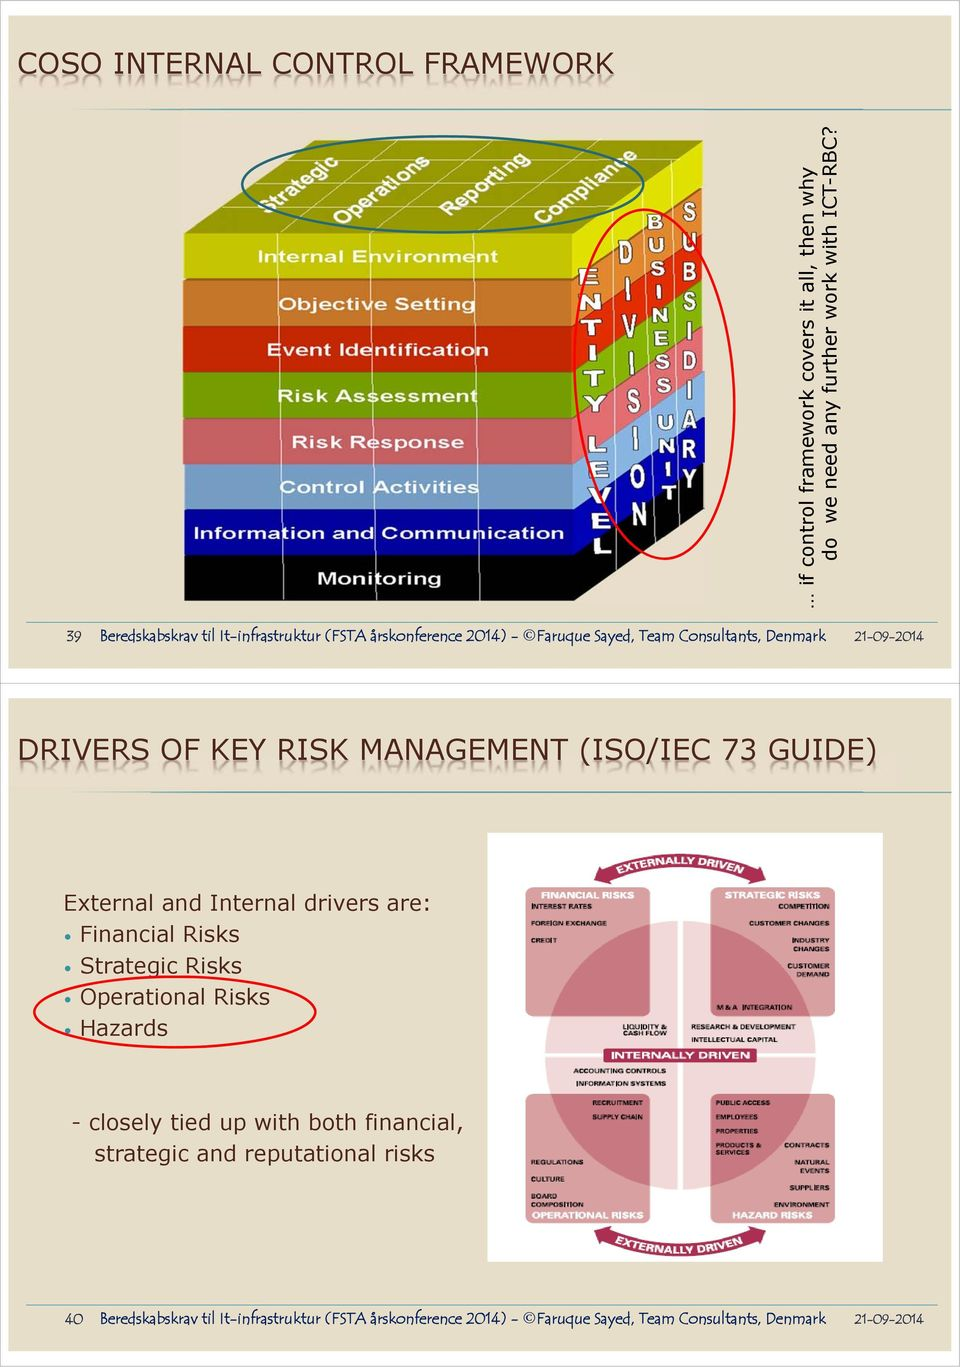 39 DRIVERS OF KEY RISK MANAGEMENT (ISO/IEC 73 GUIDE) External and Internal drivers